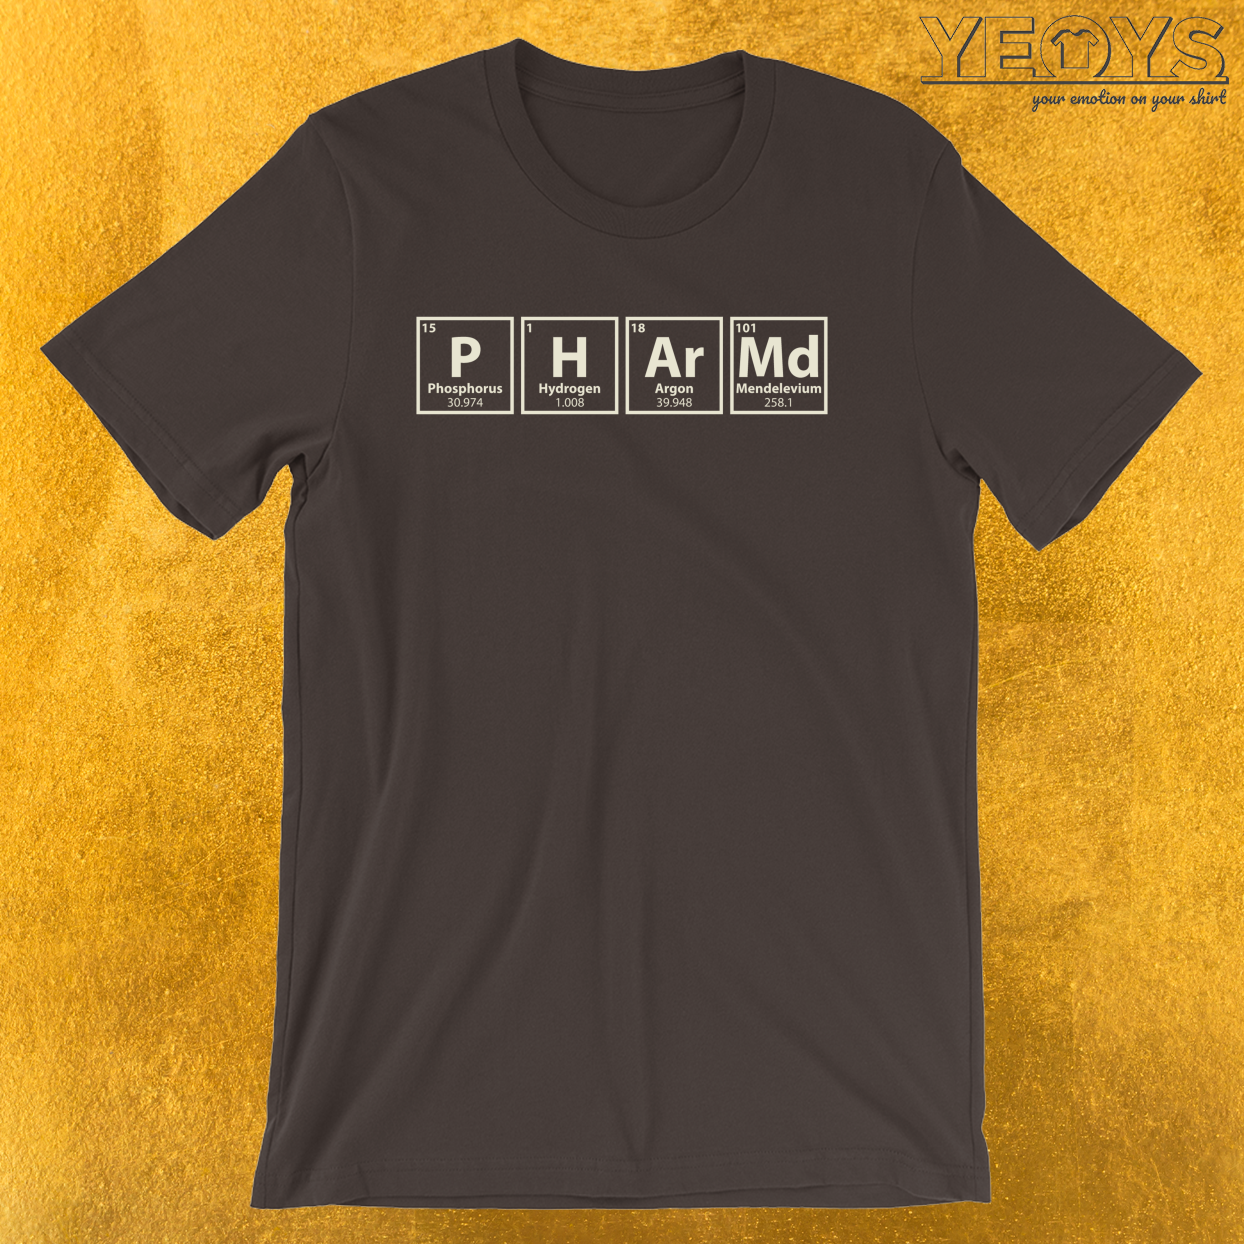 Pharm.D. Chemical Elements – Graduation Quotes Tee